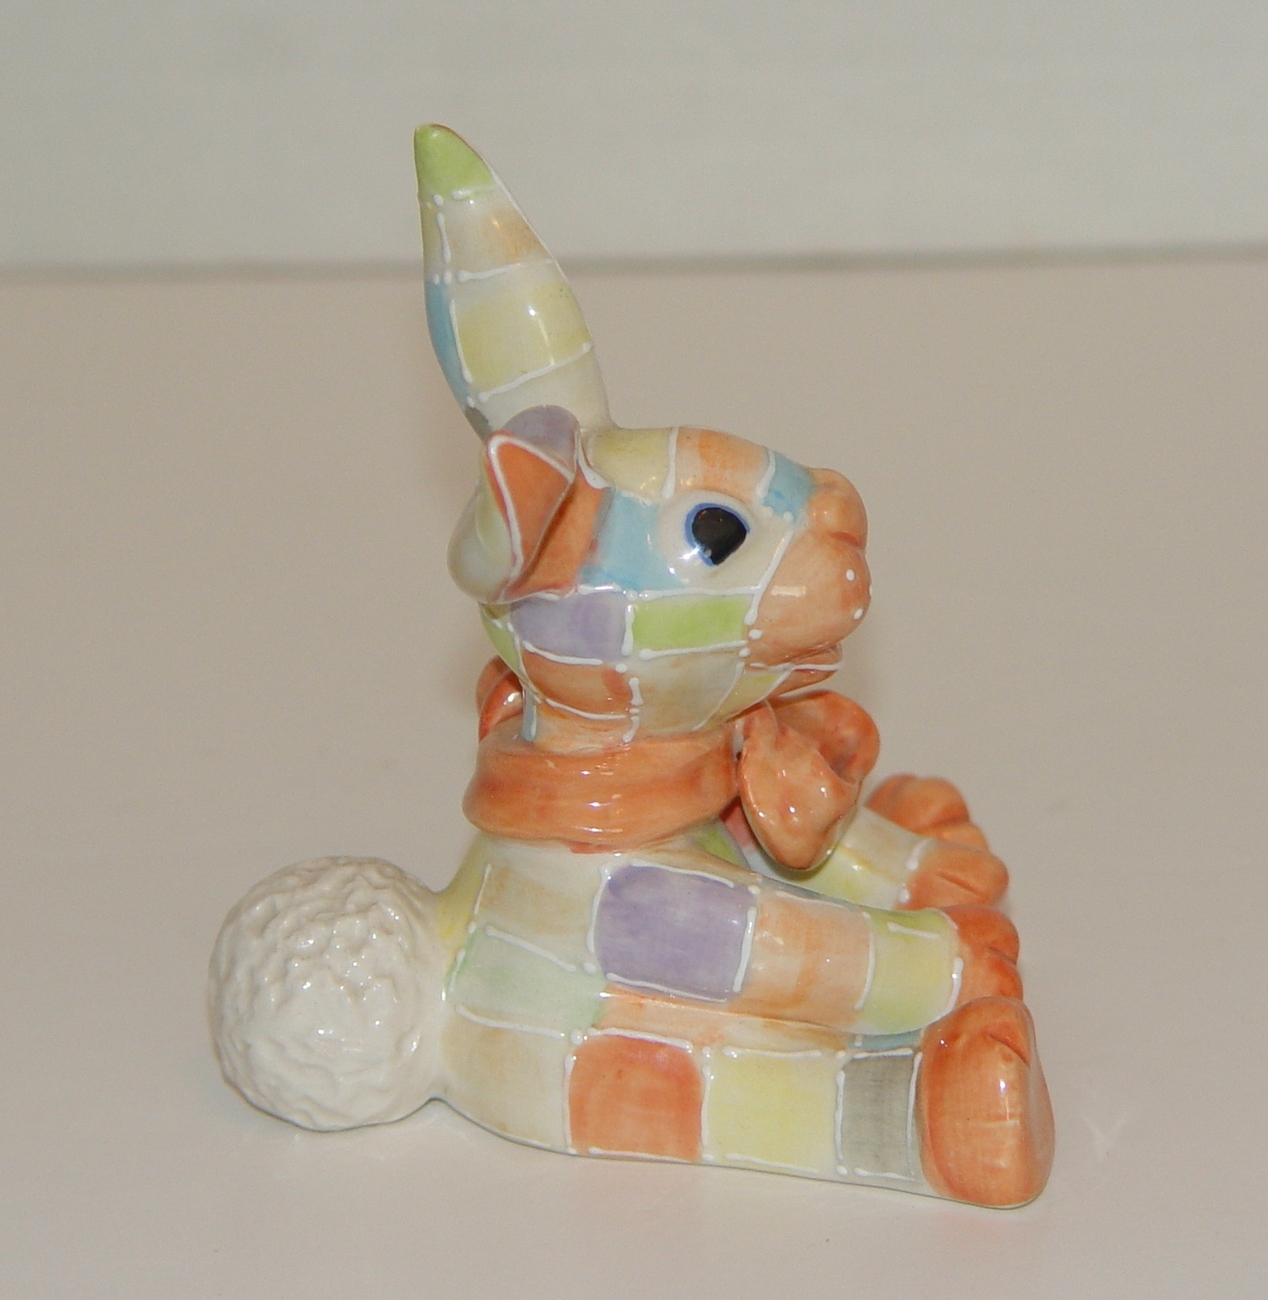 KOKO ORIGINALS Ceramic Patchwork Rabbit  Figurine : 3  1/2 in. Tall Signed